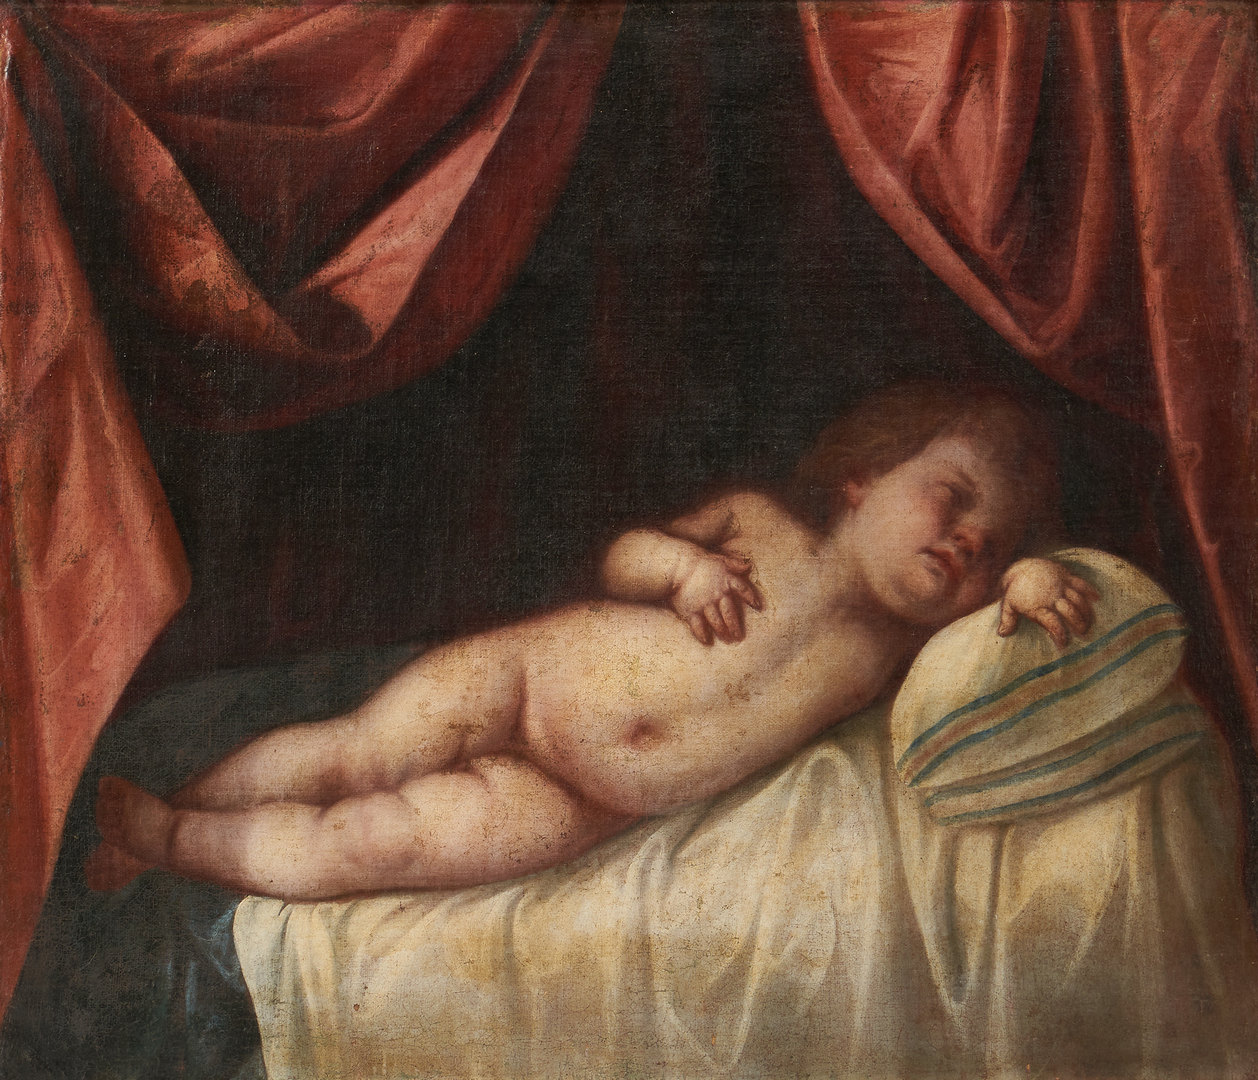 Lot 1016: 19th Century Portrait of a Child in Repose, poss. Indiana